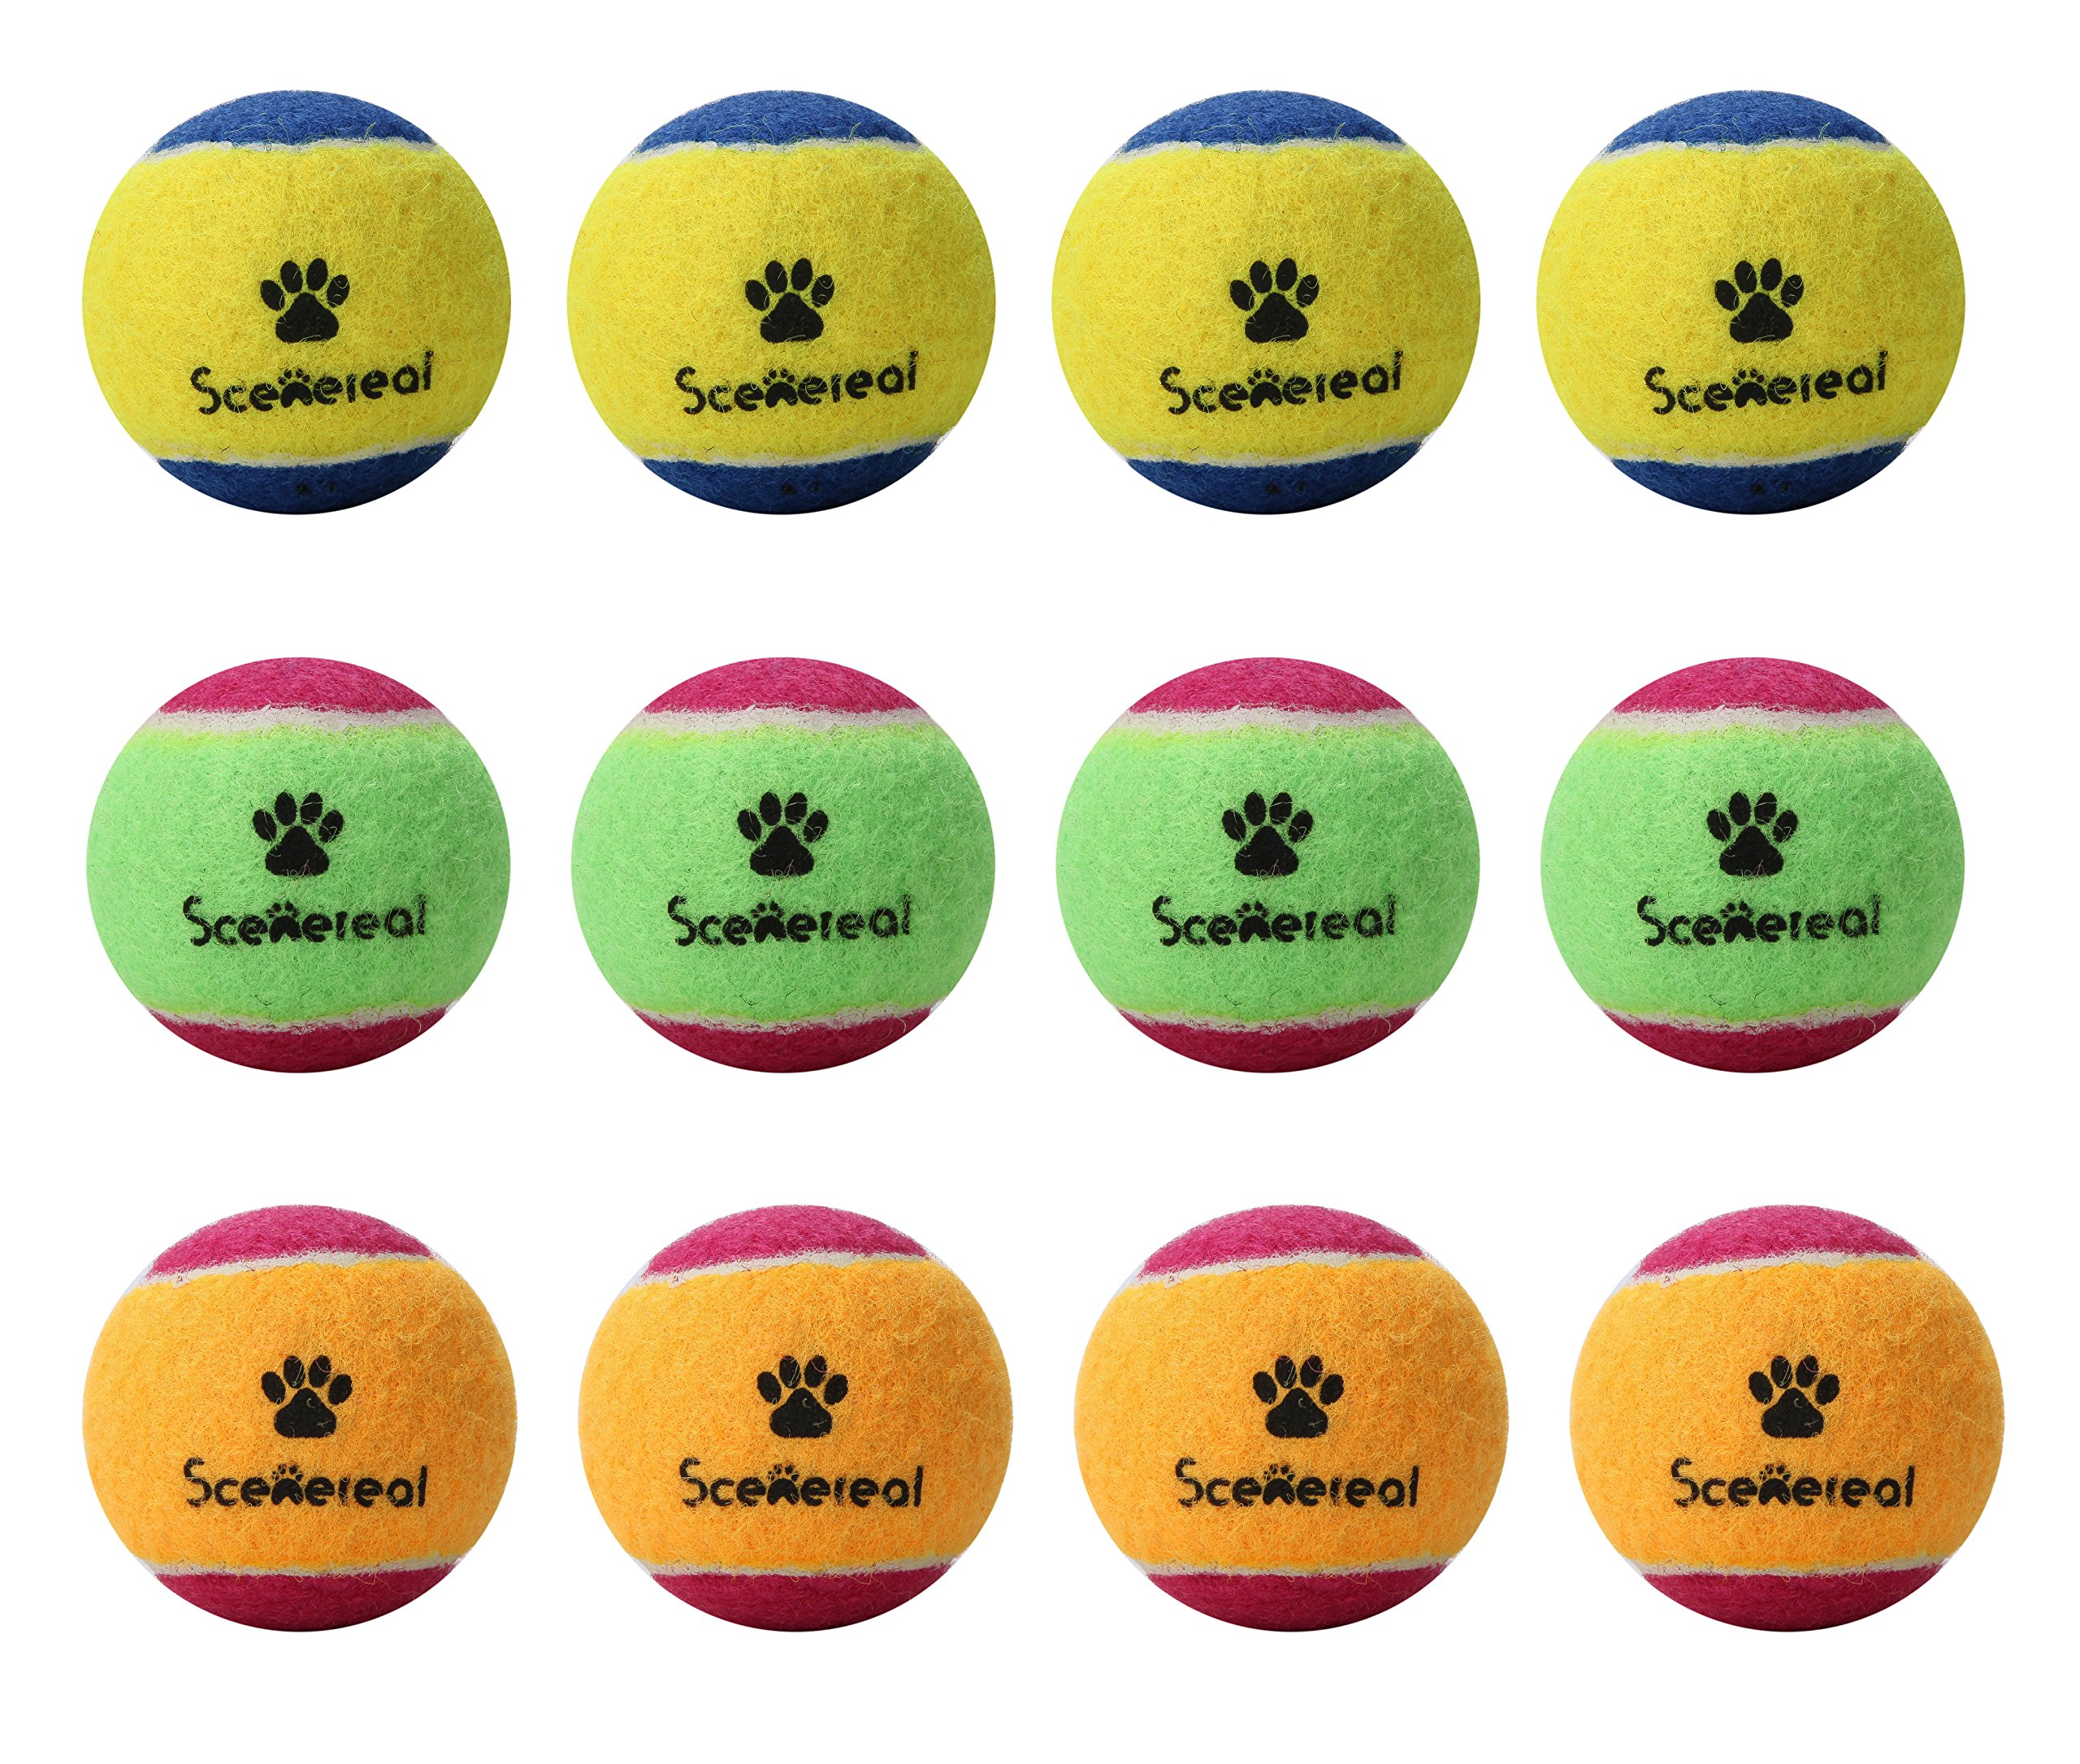 SCENEREAL Squeaky Tennis Balls for Small Dogs Training and Playing Colorful 12 Pcs/pack 1.6''